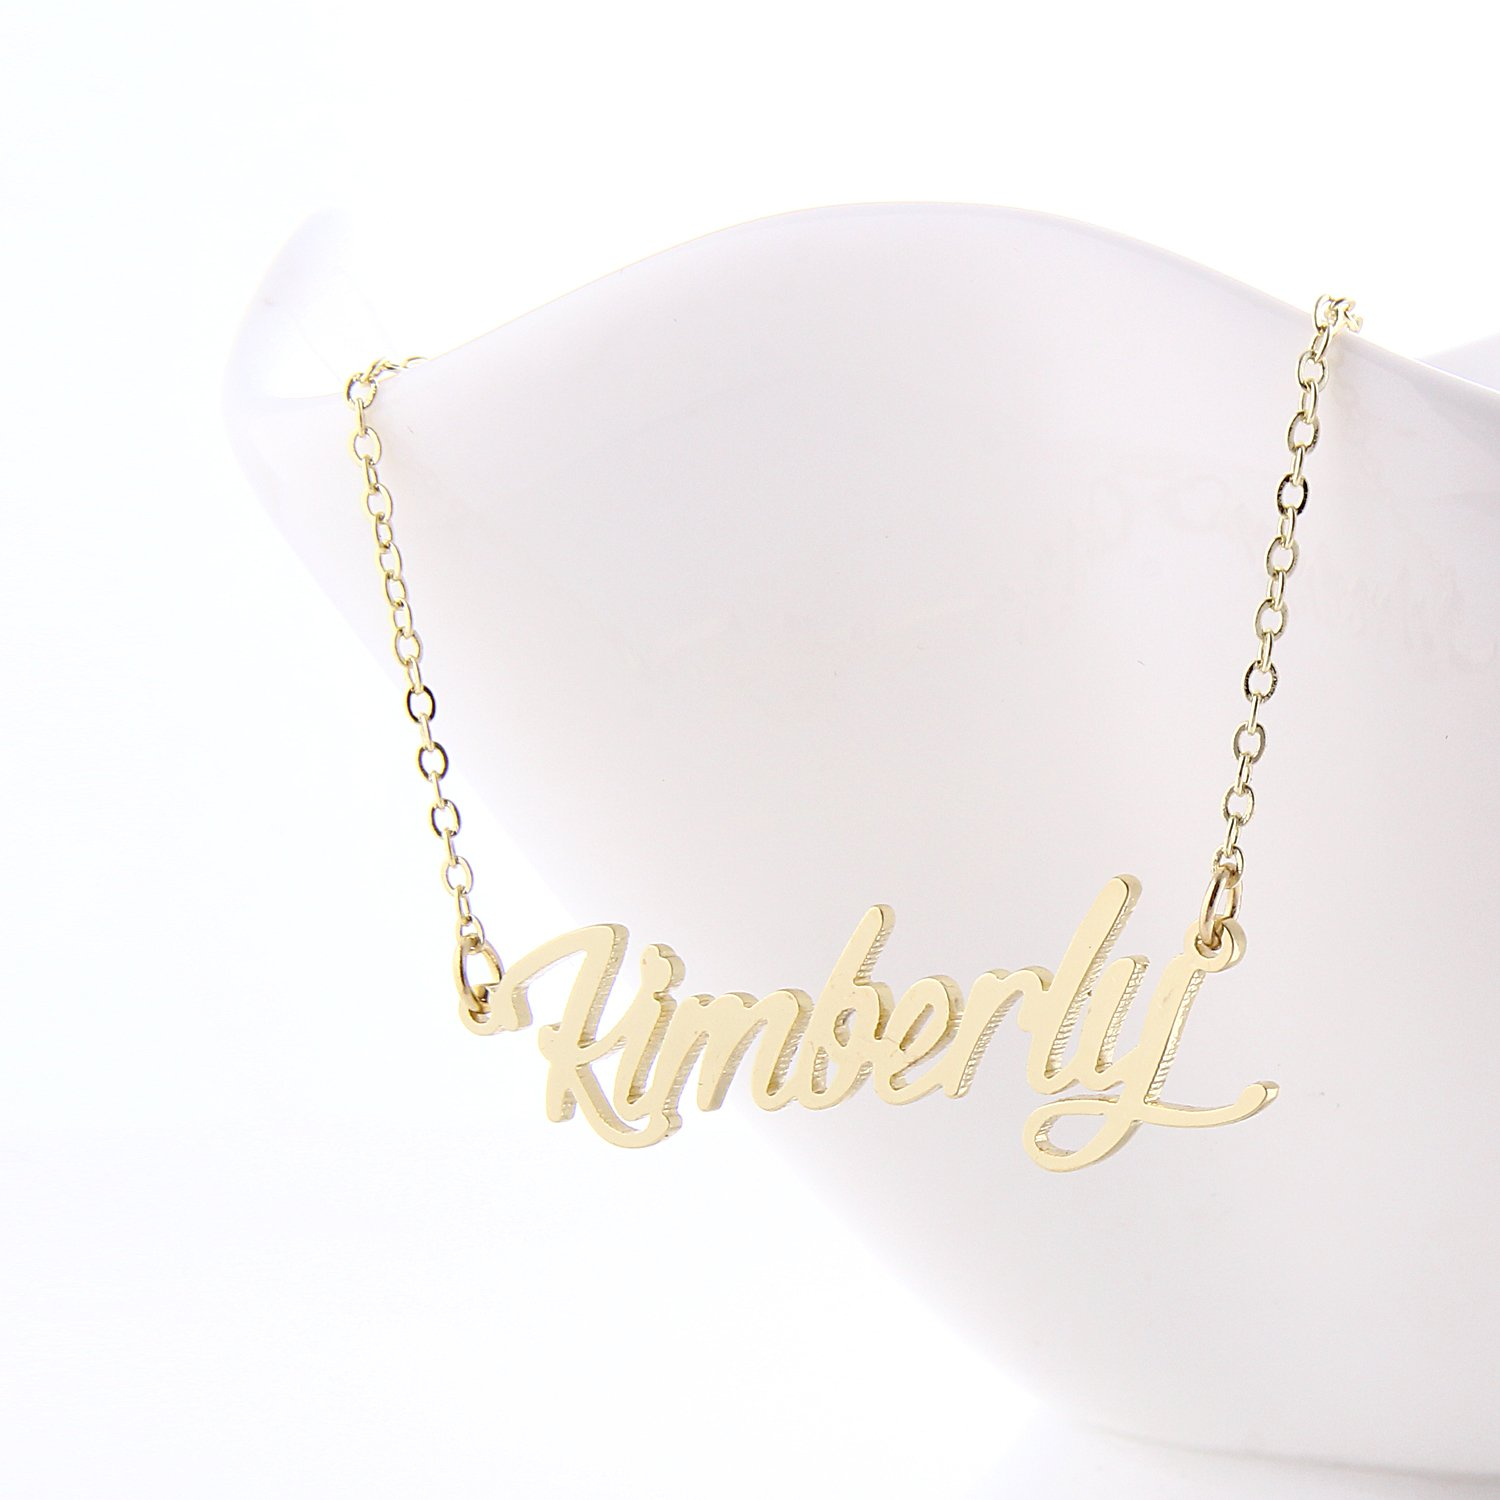 name hammeredskinnybar gold skinny chains and collections emmylowephotomadebymary personalized mbm bar necklace necklaces date